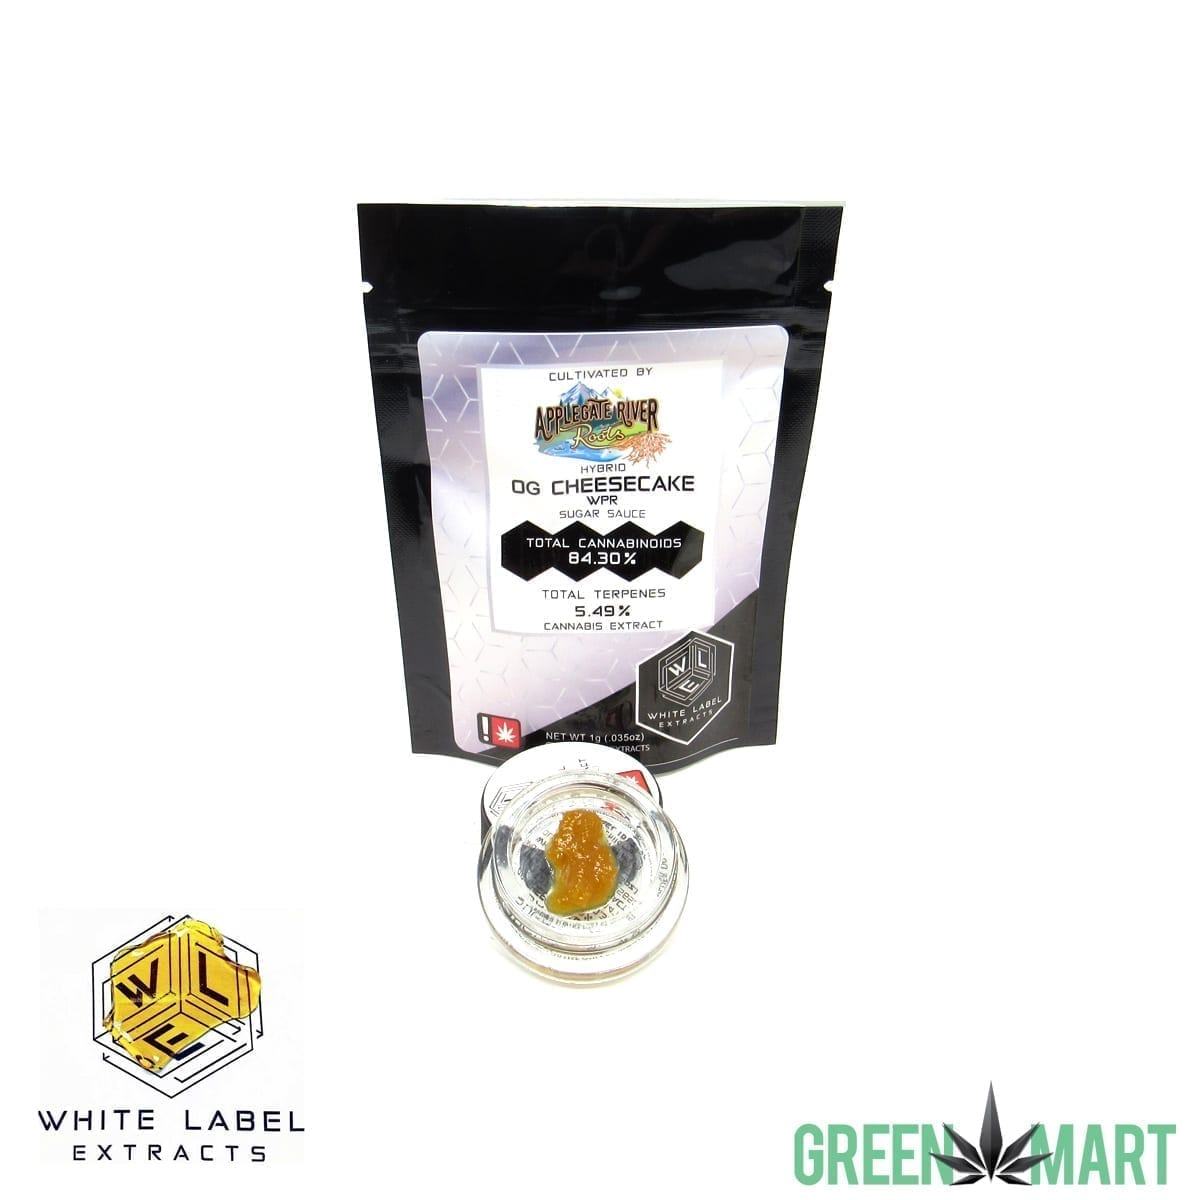 White Label Extracts - OG Cheesecake Sugar Sauce WPR